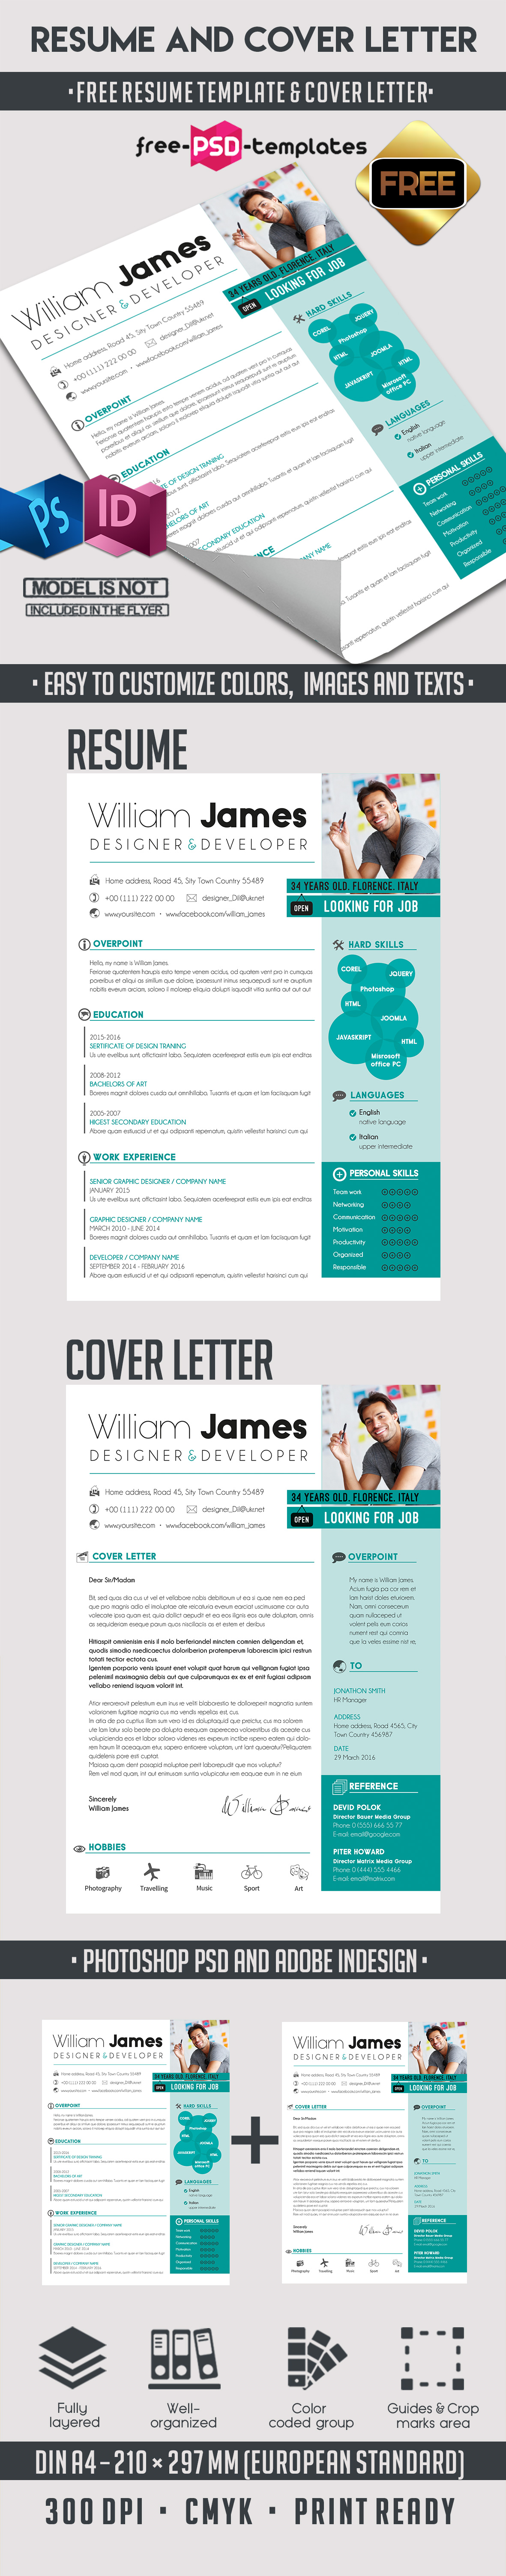 bigpreview_free resume template cover letter - Cover Letter And Resume Templates